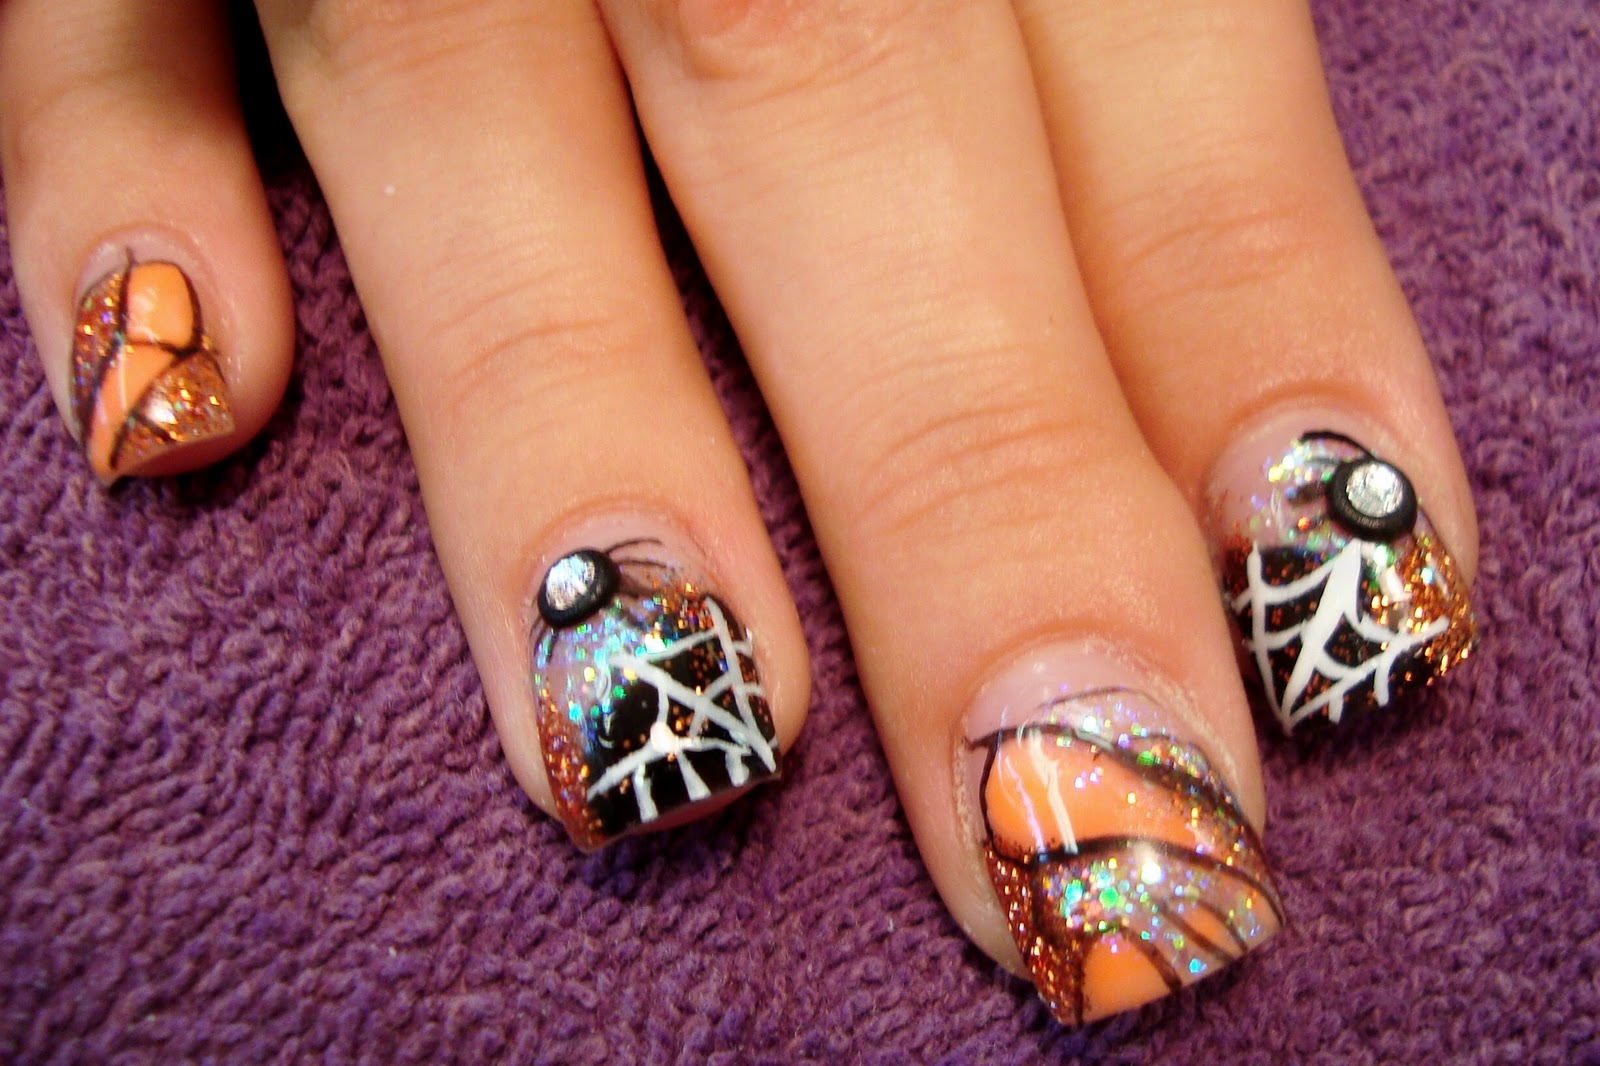 ACRYLIC NAILS: Dangers of MMA in Nail Products - ACRYLIC NAILS